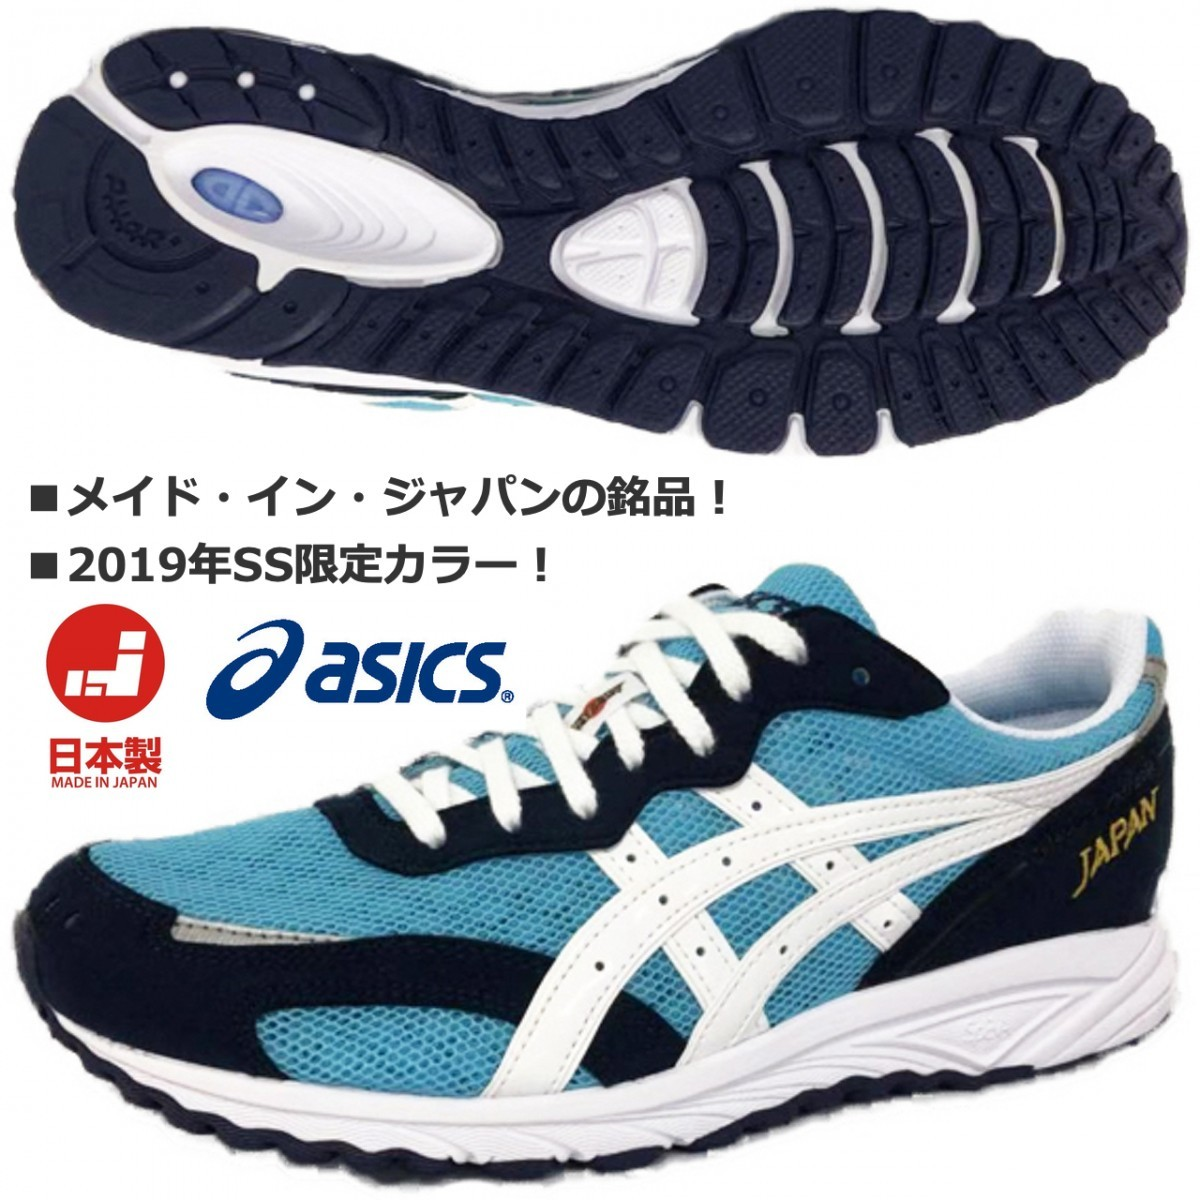 ddb7e79b Asics asics/ store limitated model / Sky sensor Japan /SKYSENSOR ...